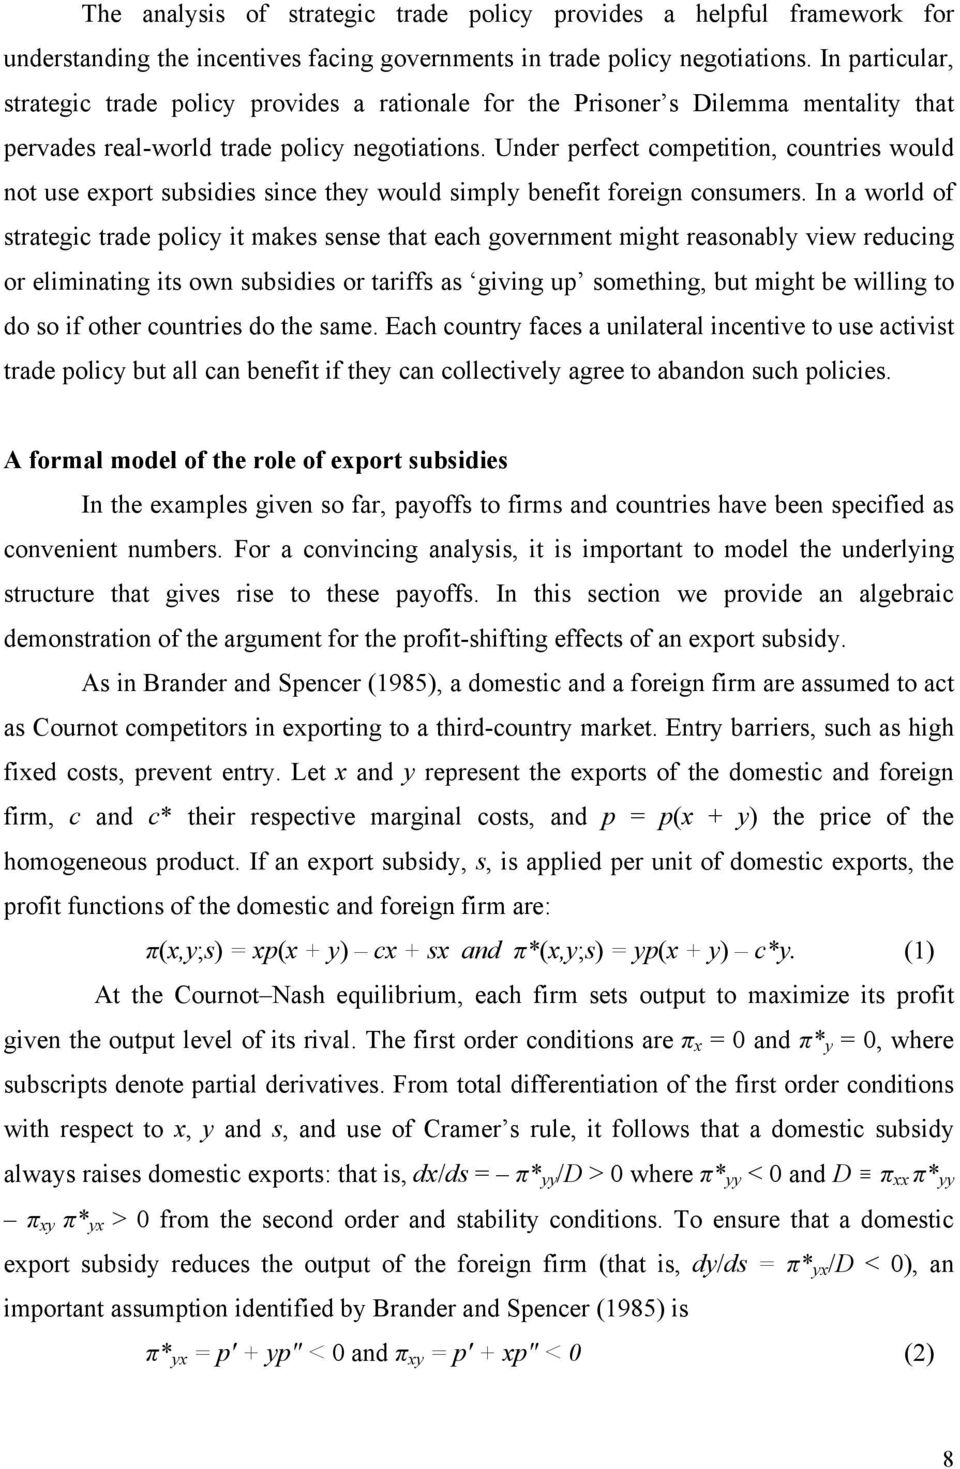 Under perfect competition, countries would not use export subsidies since they would simply benefit foreign consumers.